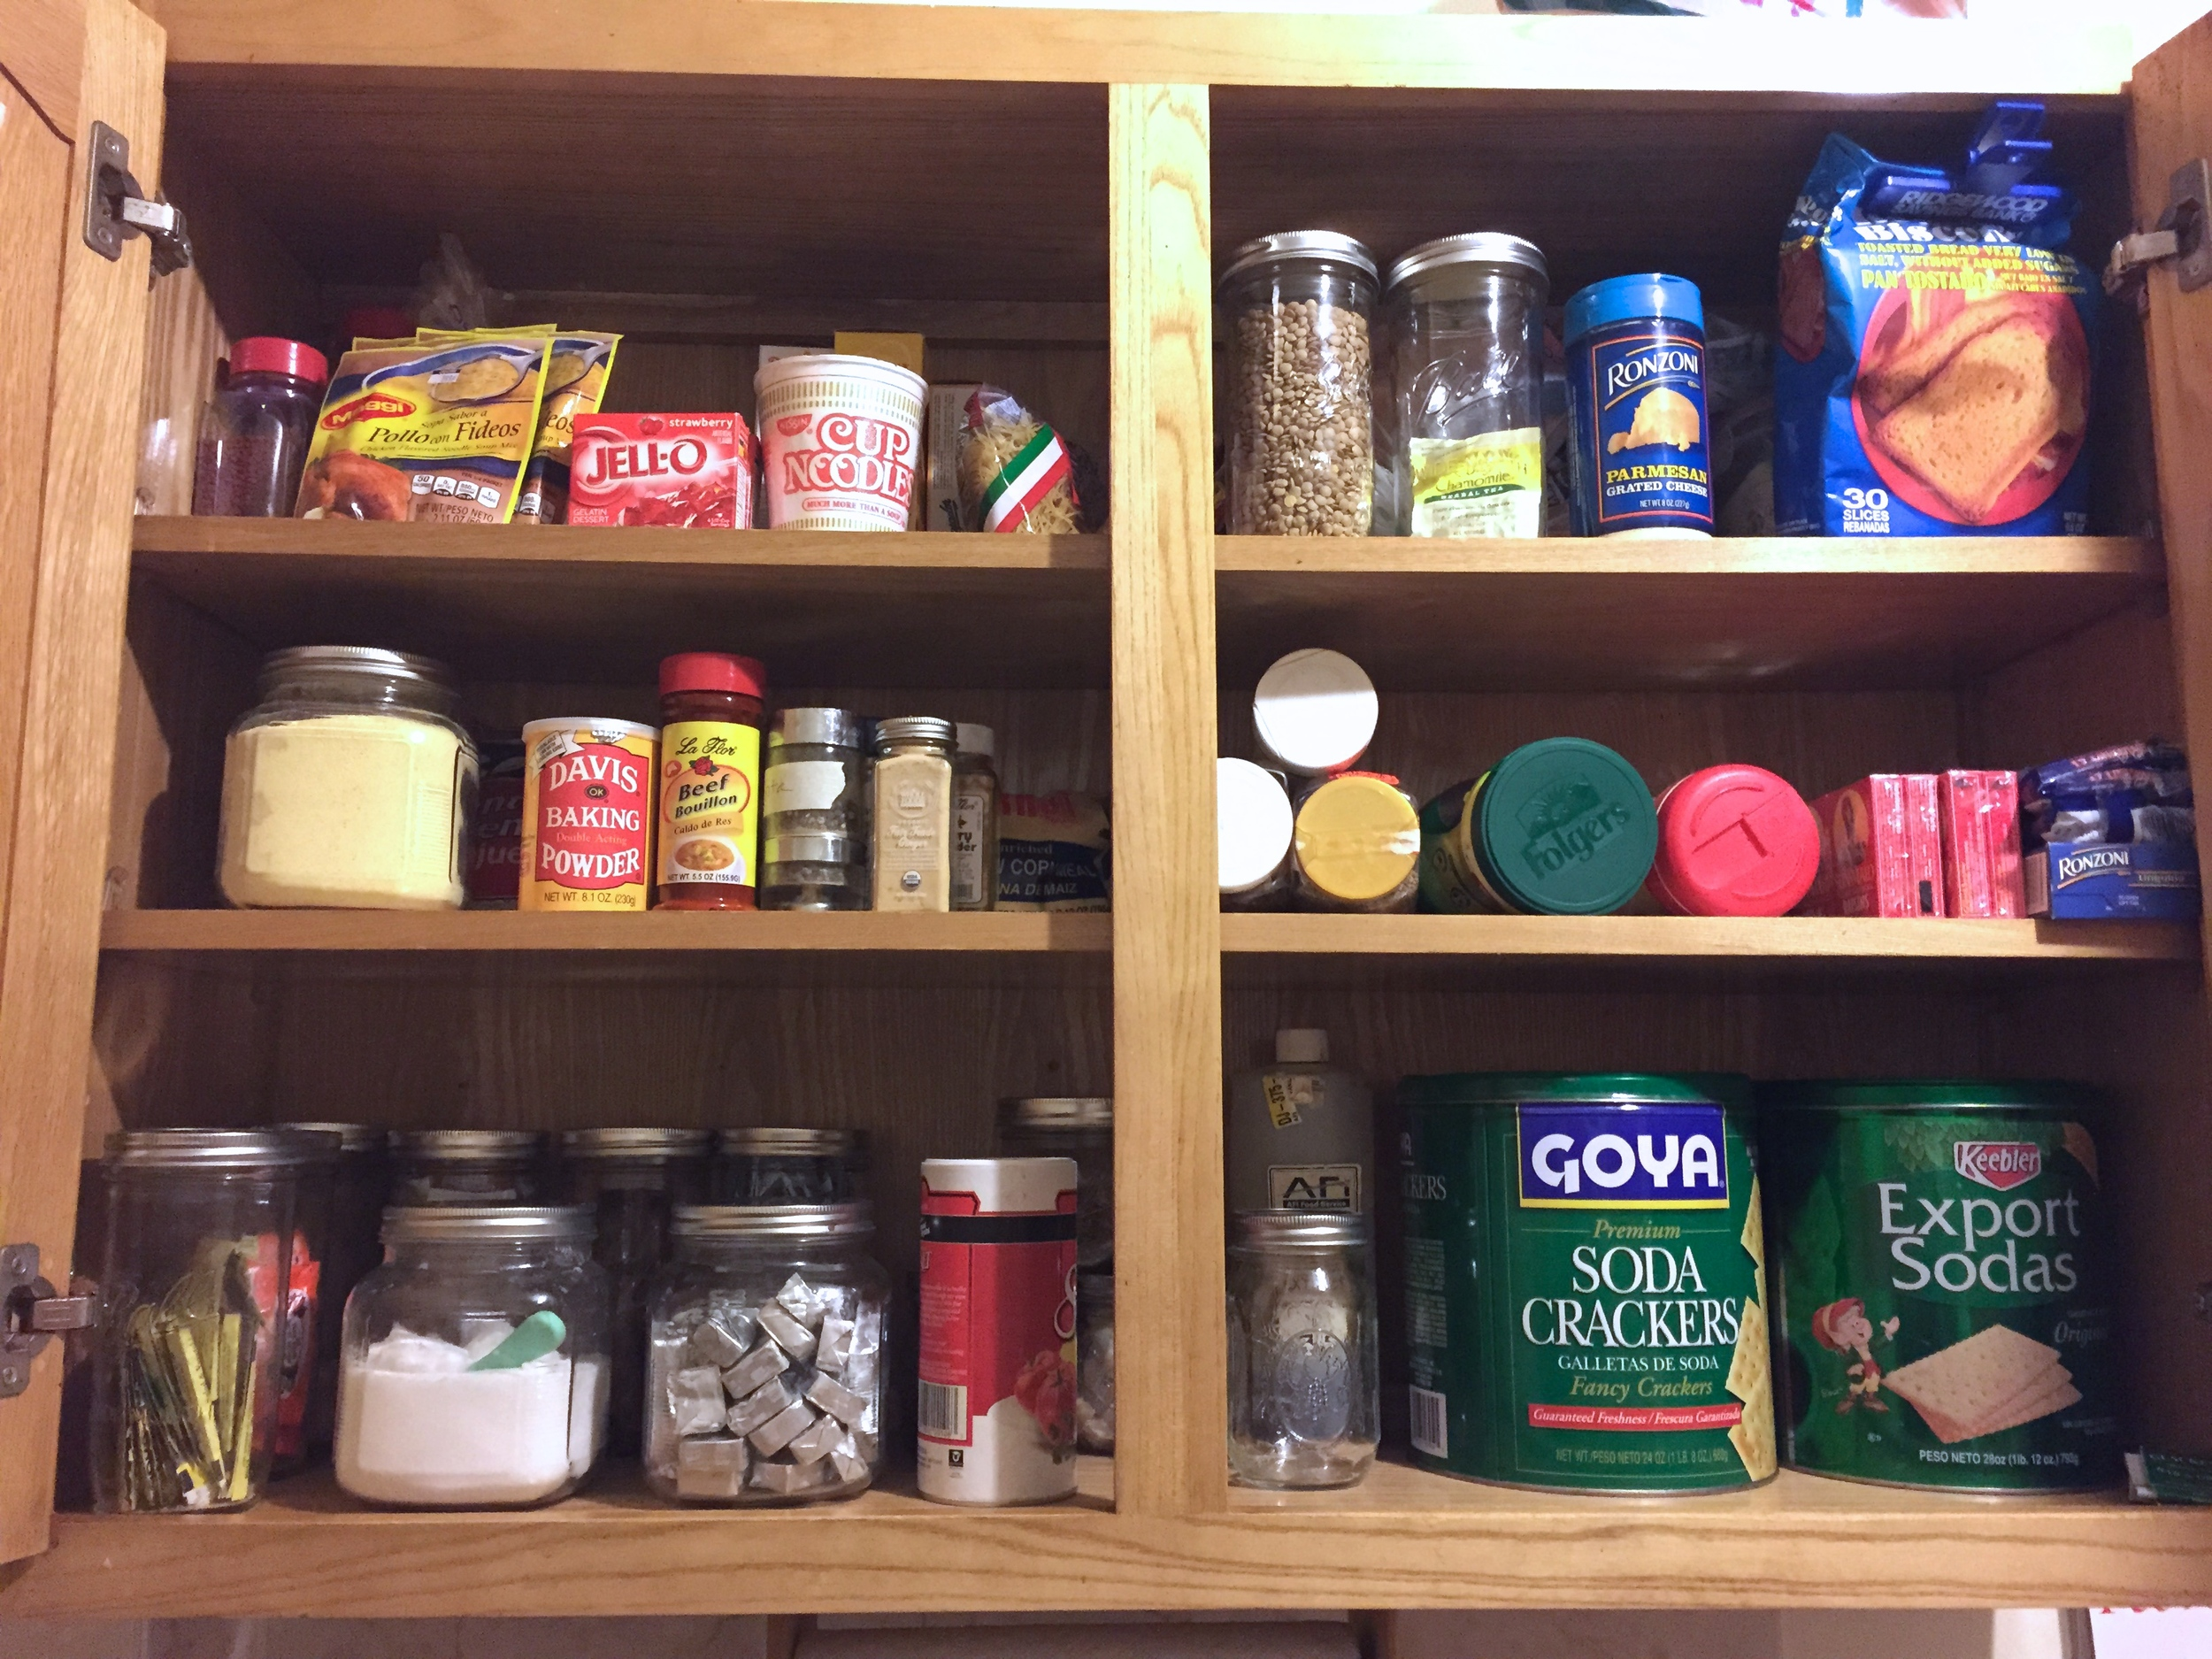 Place the most used items up front when organizing your cabinet